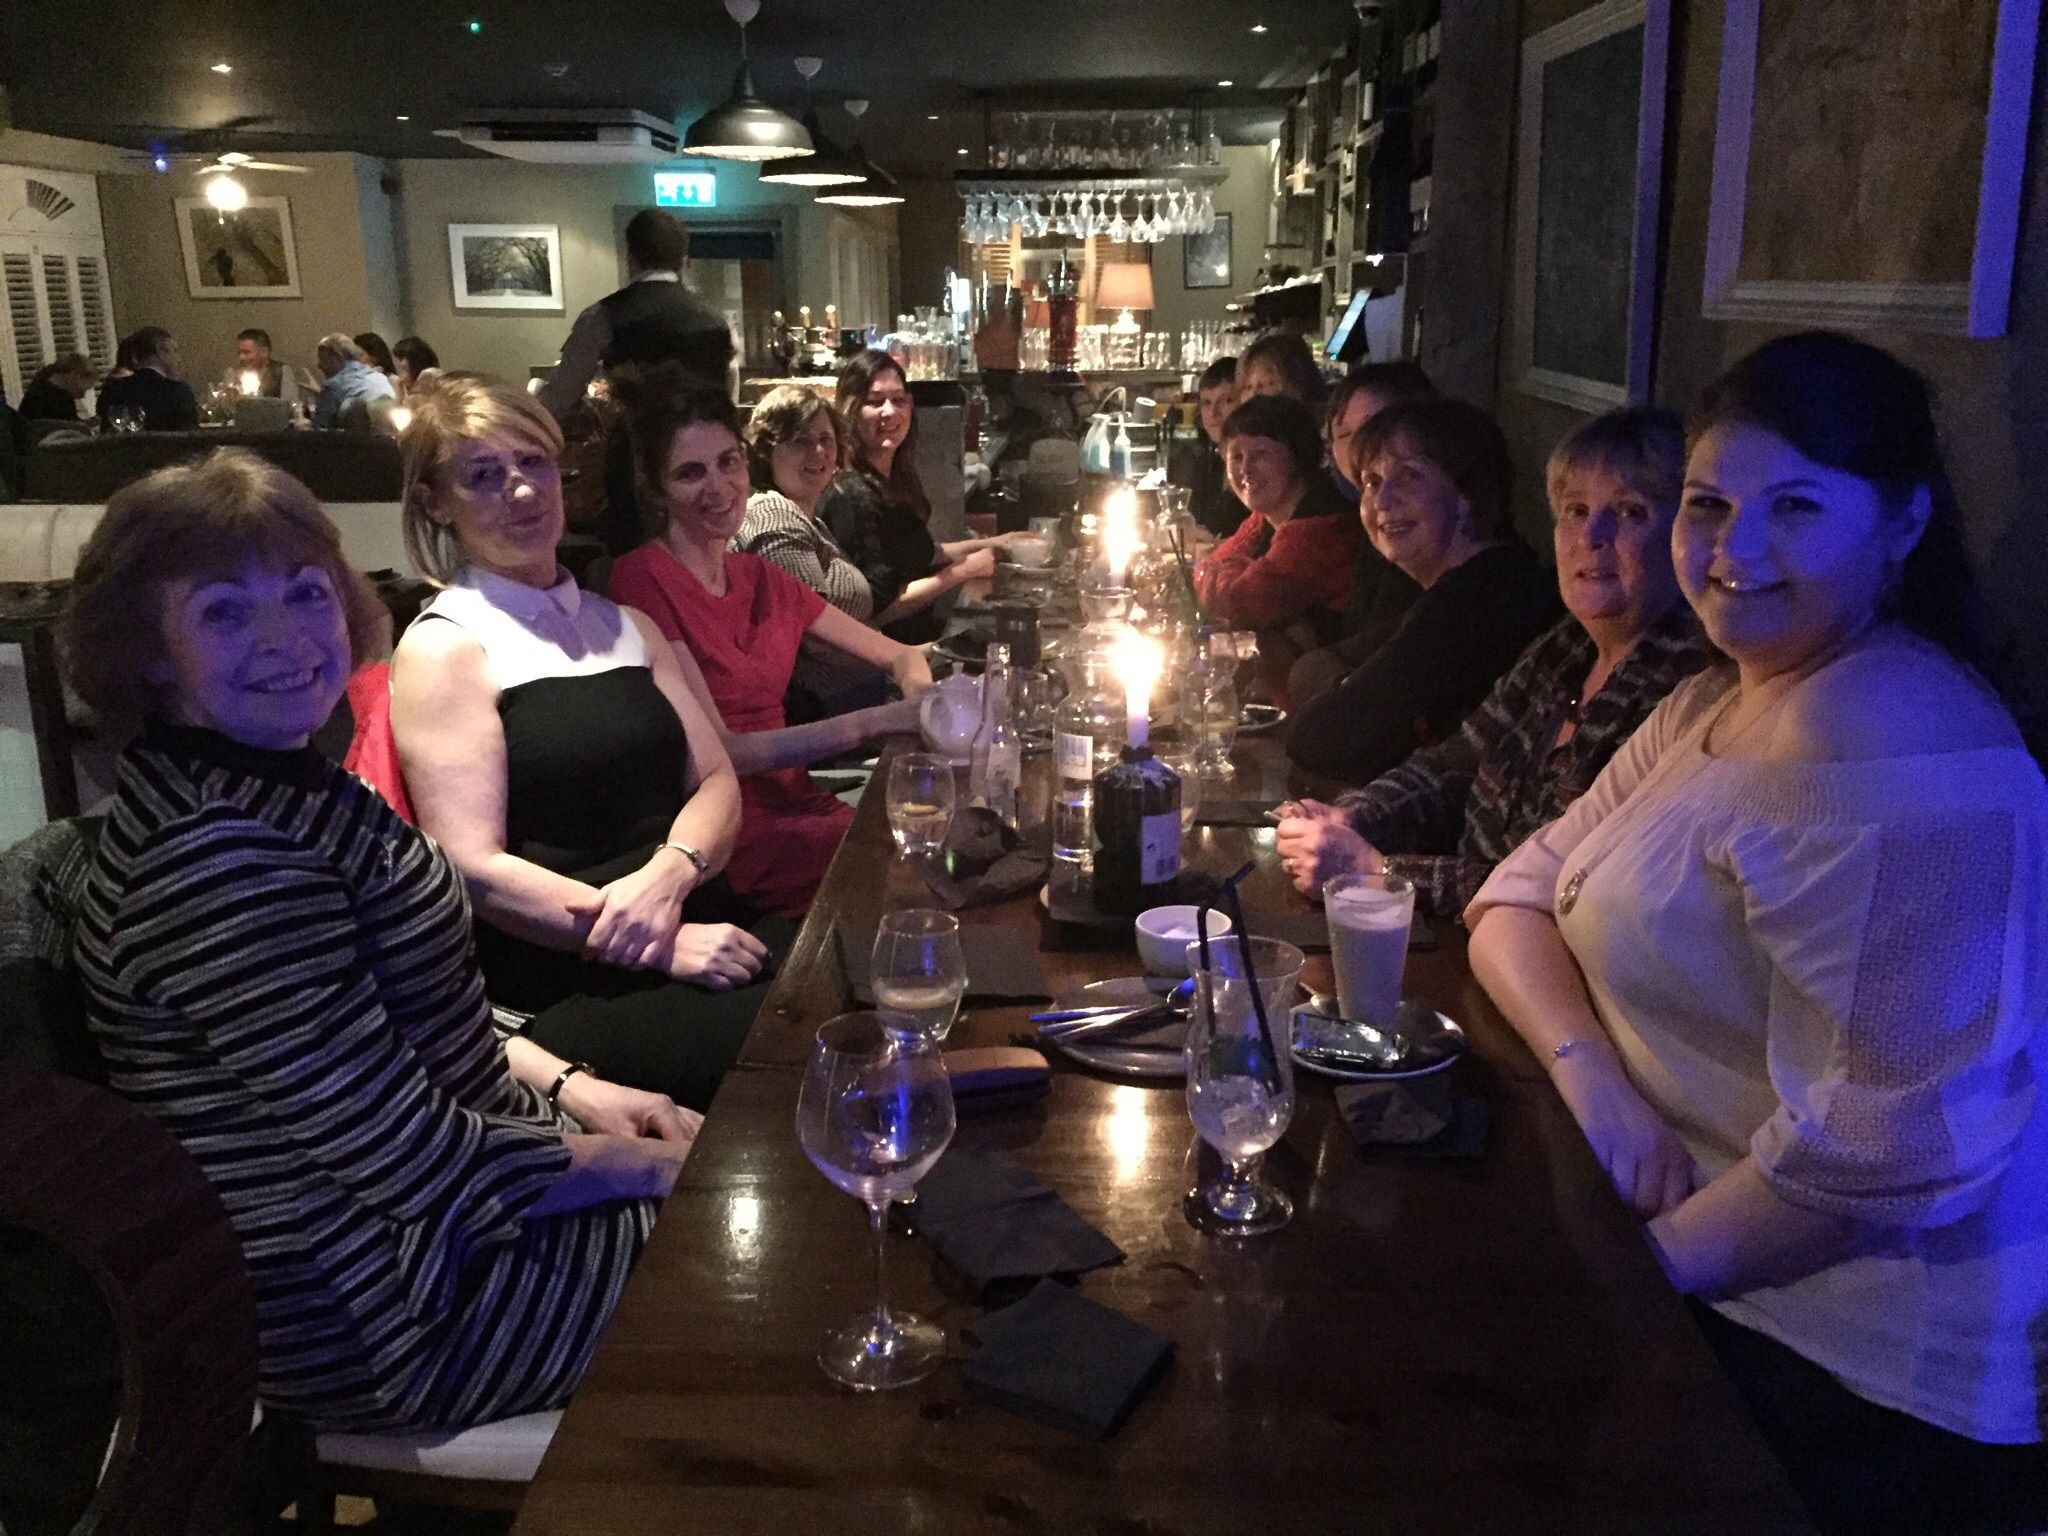 Find a group in Kildare - Meetup